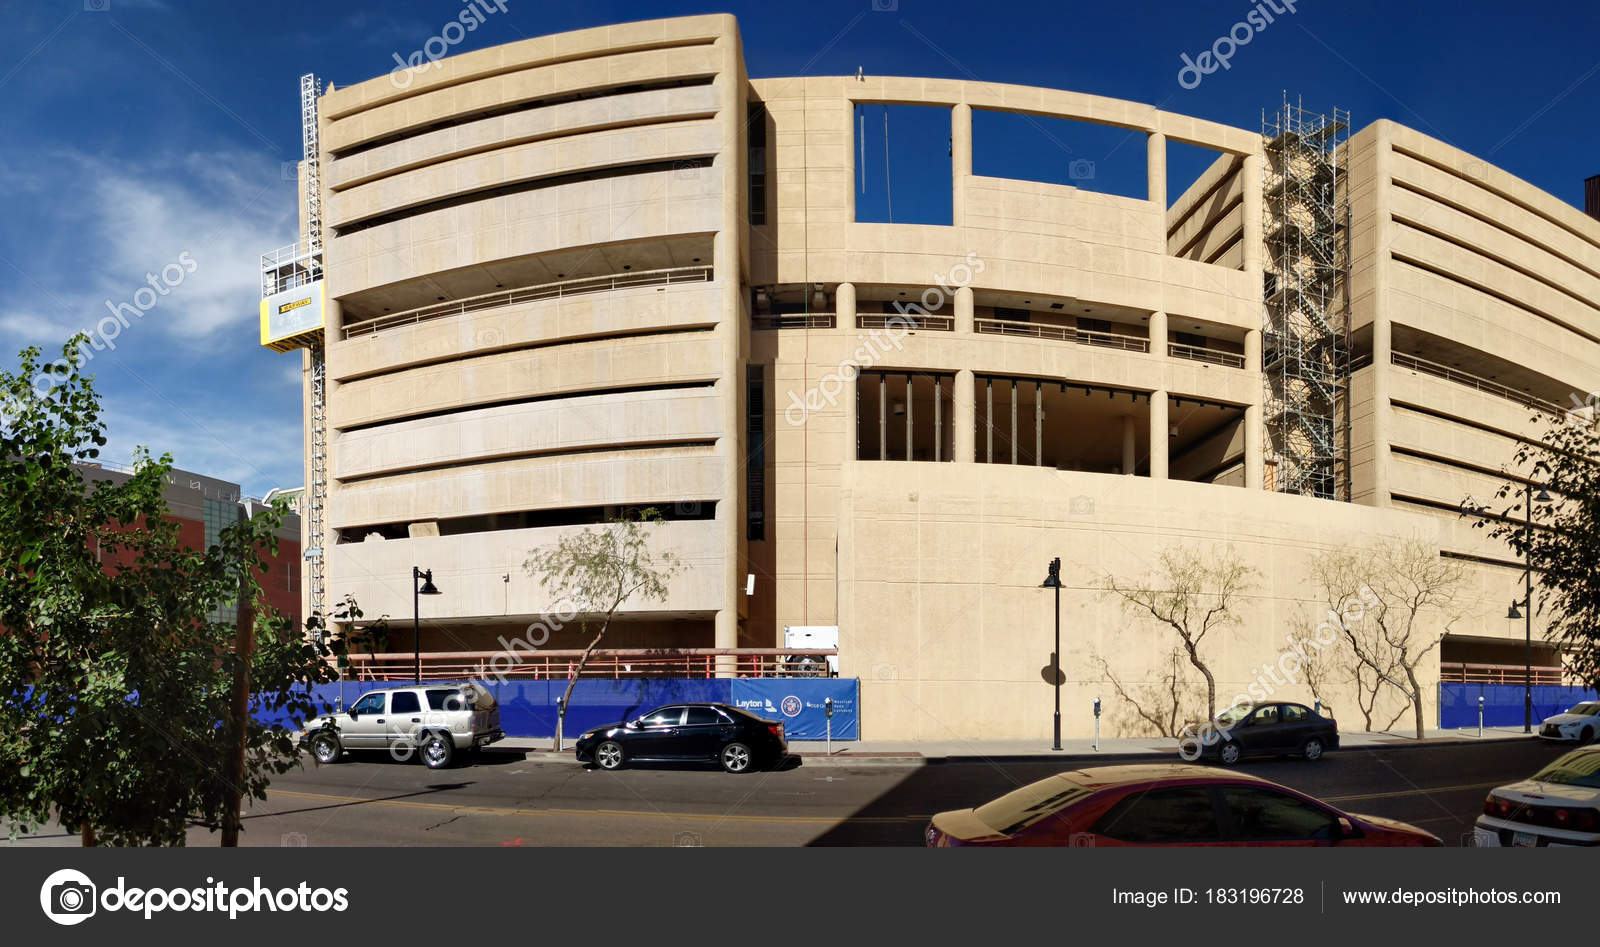 Phoenix az usa january 30 2018 reconstruction of former jail house into modern business offices at jackson street in phoenix downtown next to 4th